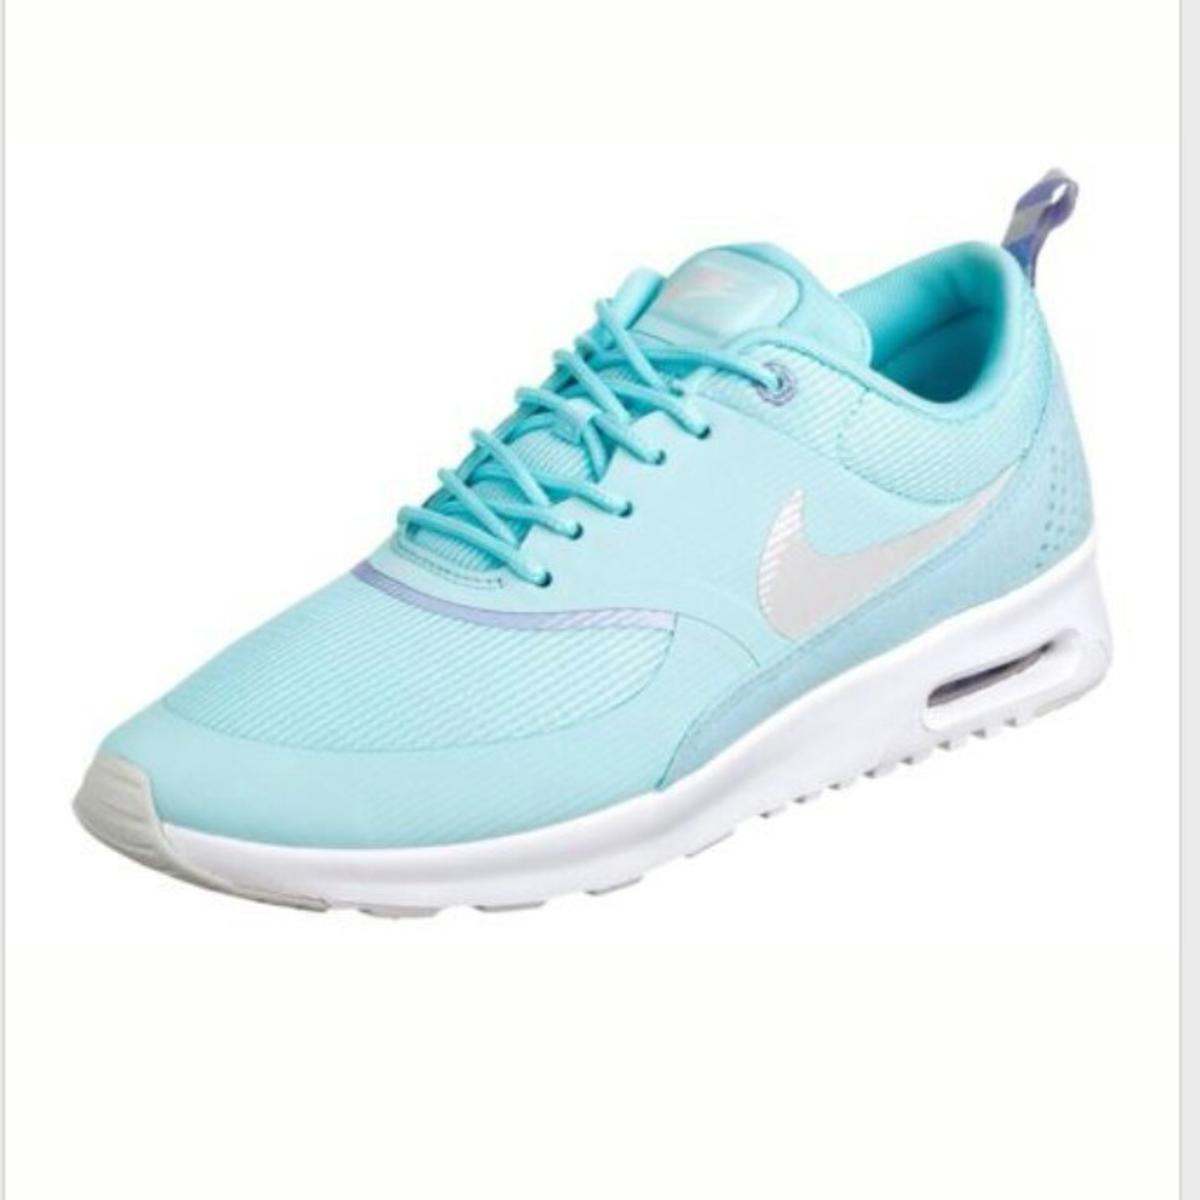 Nike Air Max Thea Mint 41 42 5 Neu In 30926 Seelze For 159 99